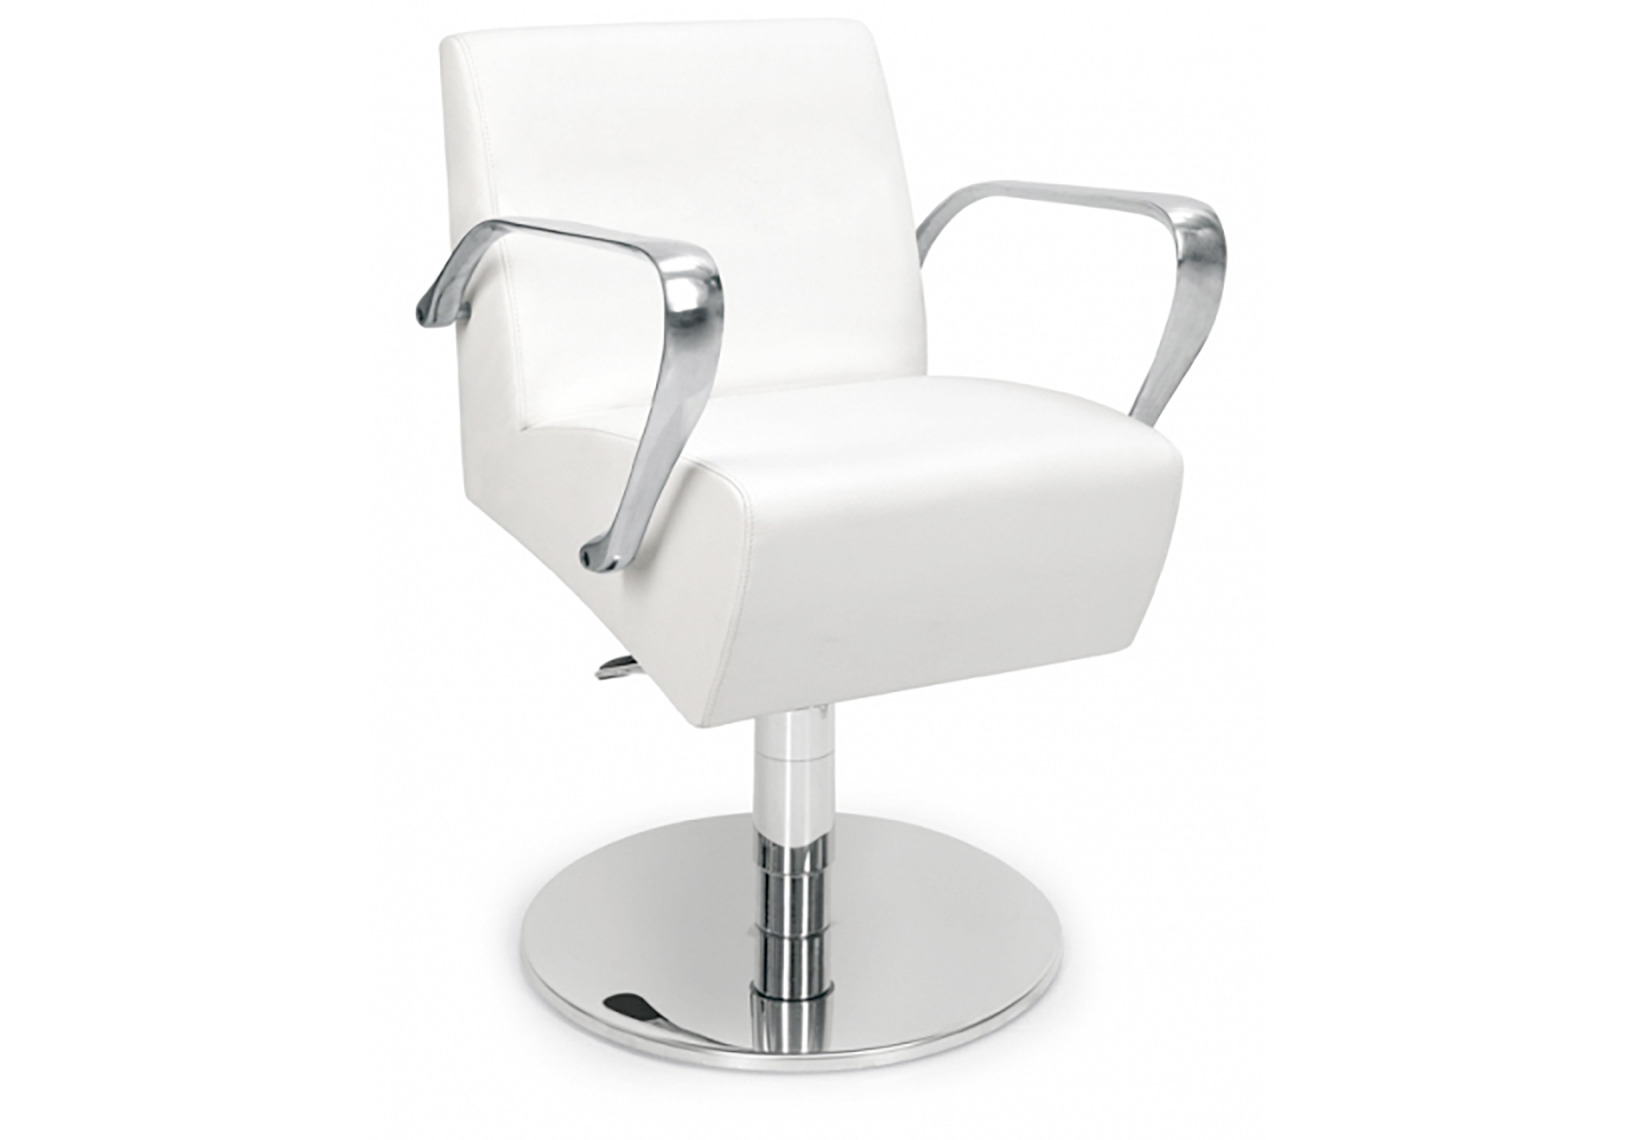 revolving chair for salon wingback covers walmart radian nelson mobilier spavision global leading spa